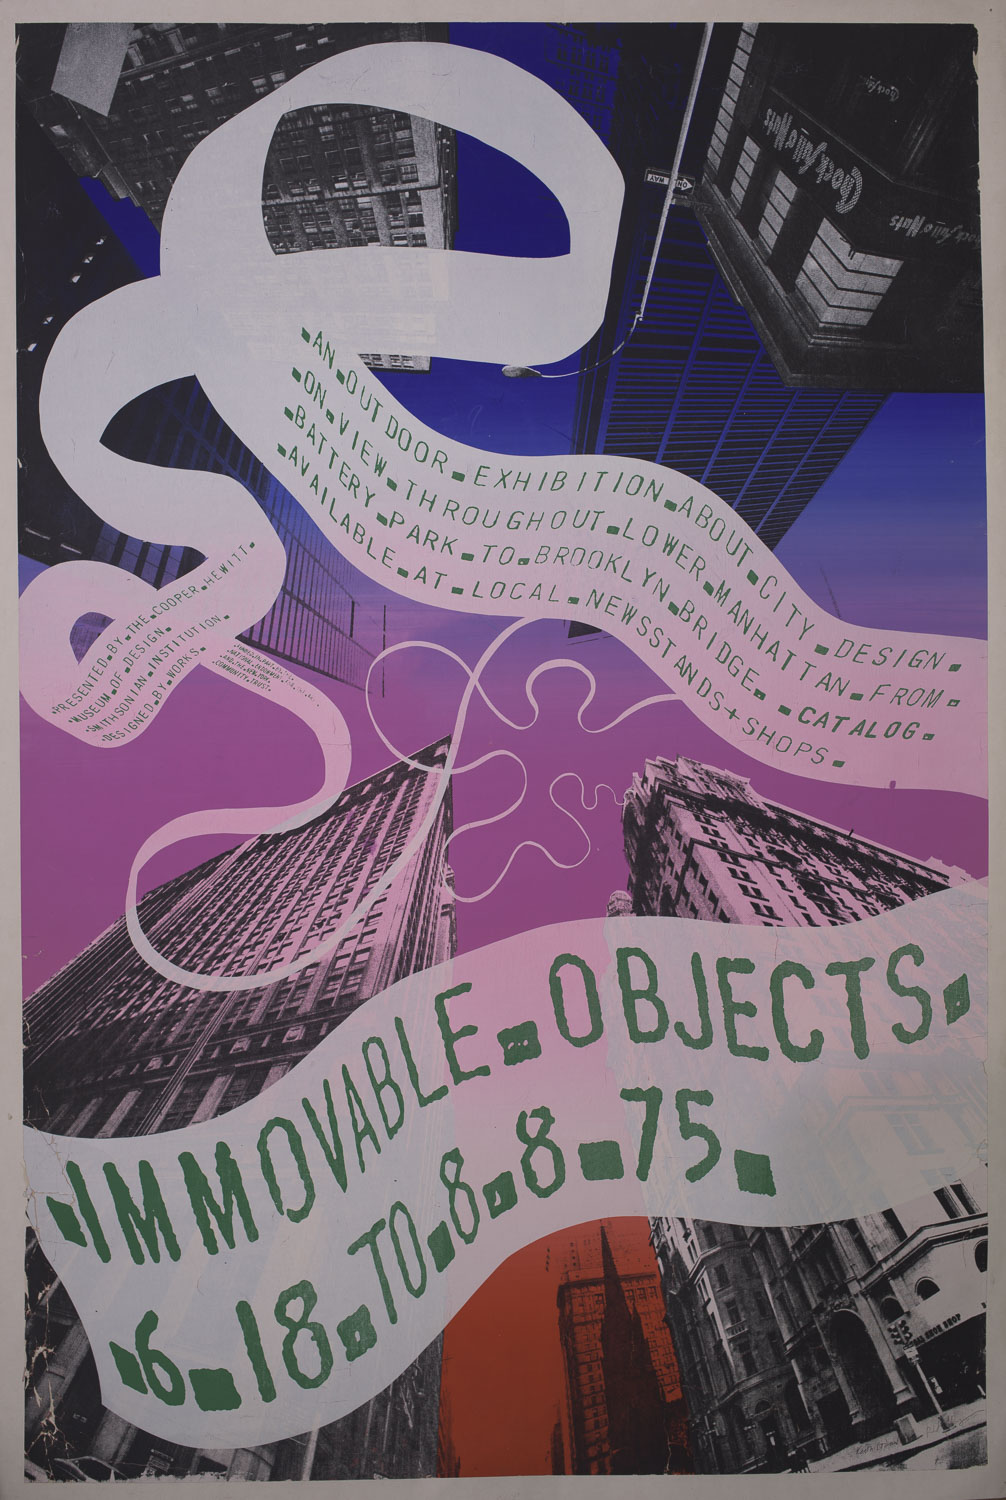 Poster for Immovable Objects exhibition, 1975.